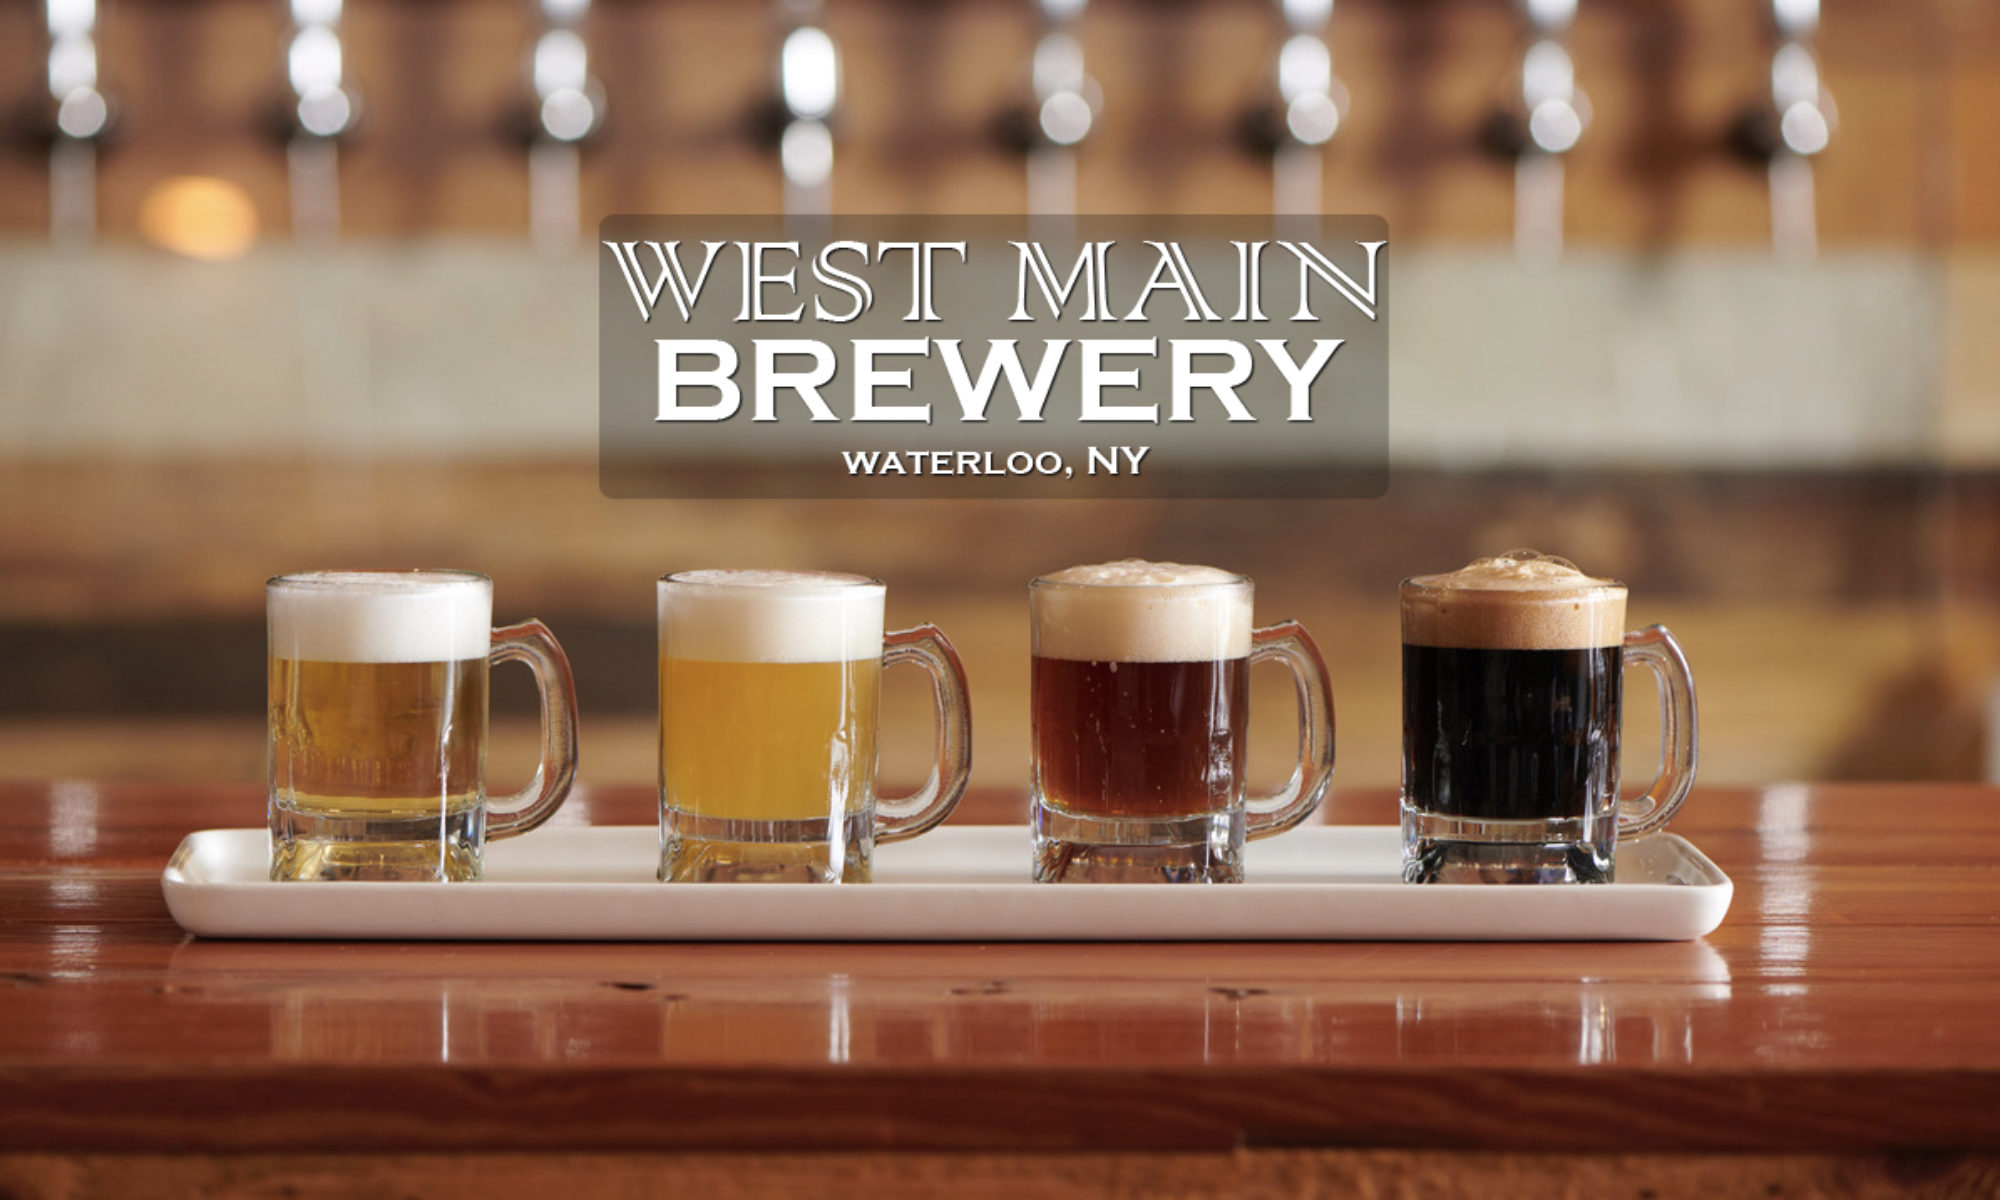 West Main Brewery